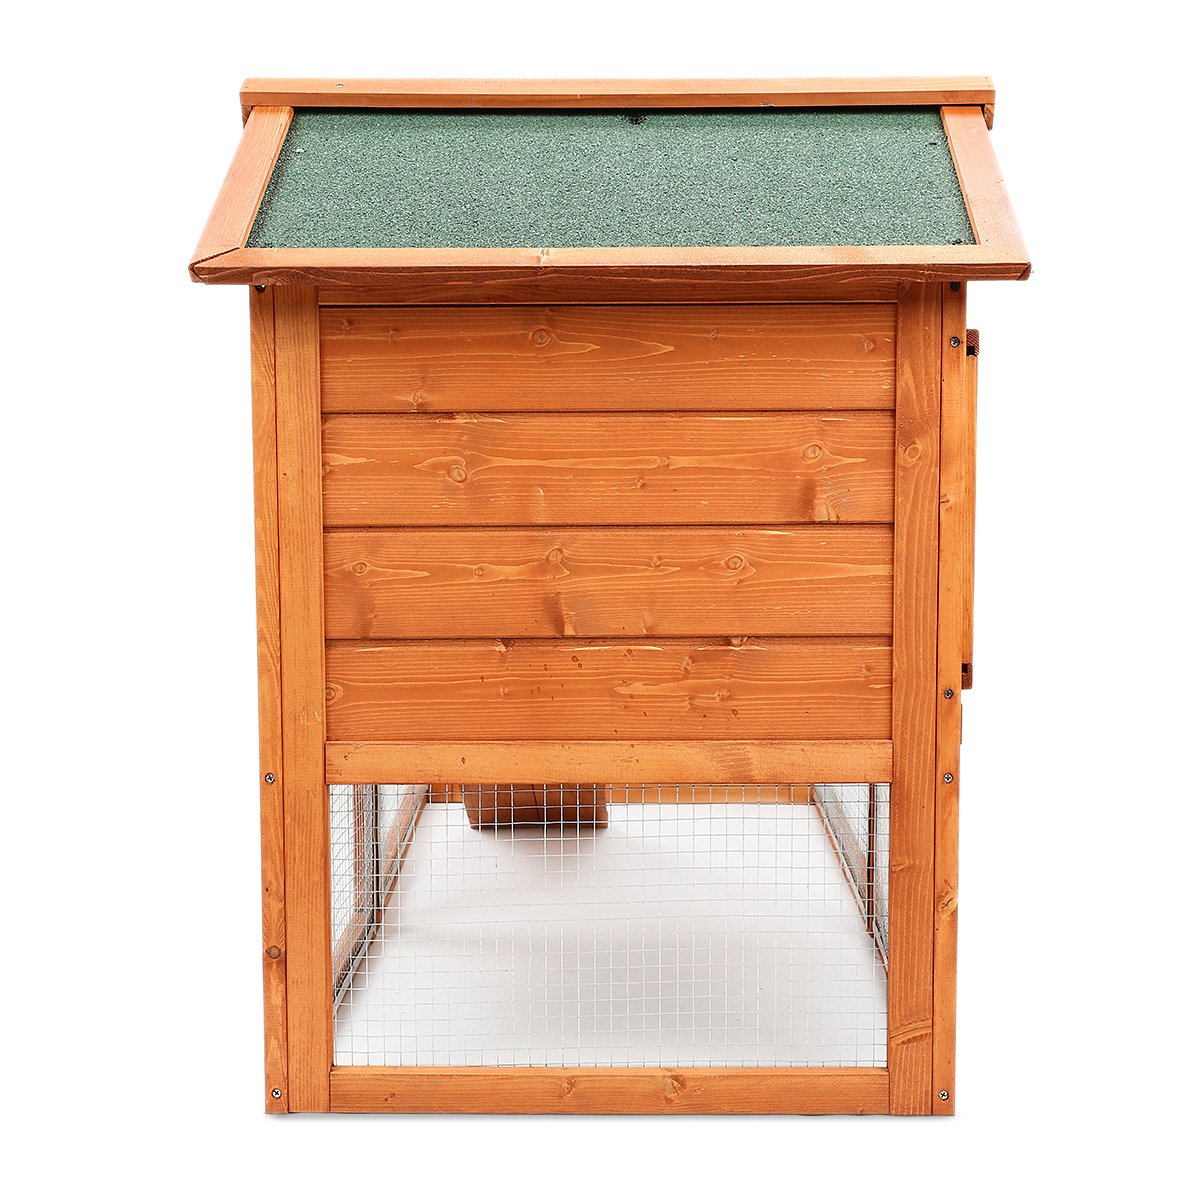 Magshion Wooden Chicken Coop Rabbit Bunny Hutch Pet Cage Wood Small Animal Poultry Cage Run Indoor by Magshion (Image #8)